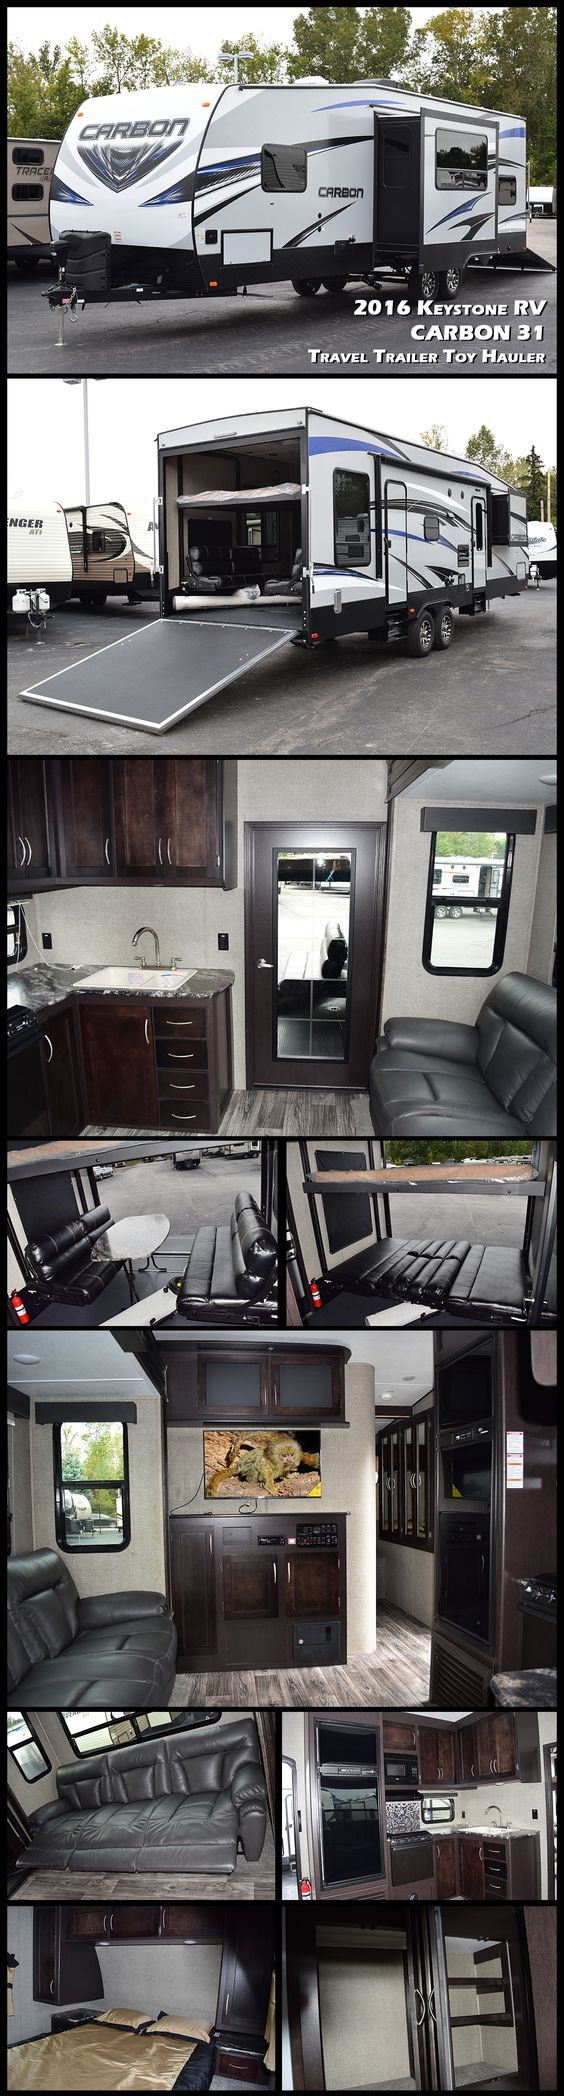 "This 2016 CARBON 31 Travel Trailer Toy Hauler by KEYSTONE RV is ready to take you and your family on a great adventure! As you enter the main side door you will see a spacious combined living and kitchen area with a slide out 97"" reclining sofa with dinette table and a large 72"" window above to enjoy any view. The 10' garage space offers two electric bunks that store up near the ceiling out of the way when not in use. A 30 gallon fuel tank will keep things going all weekend long!"